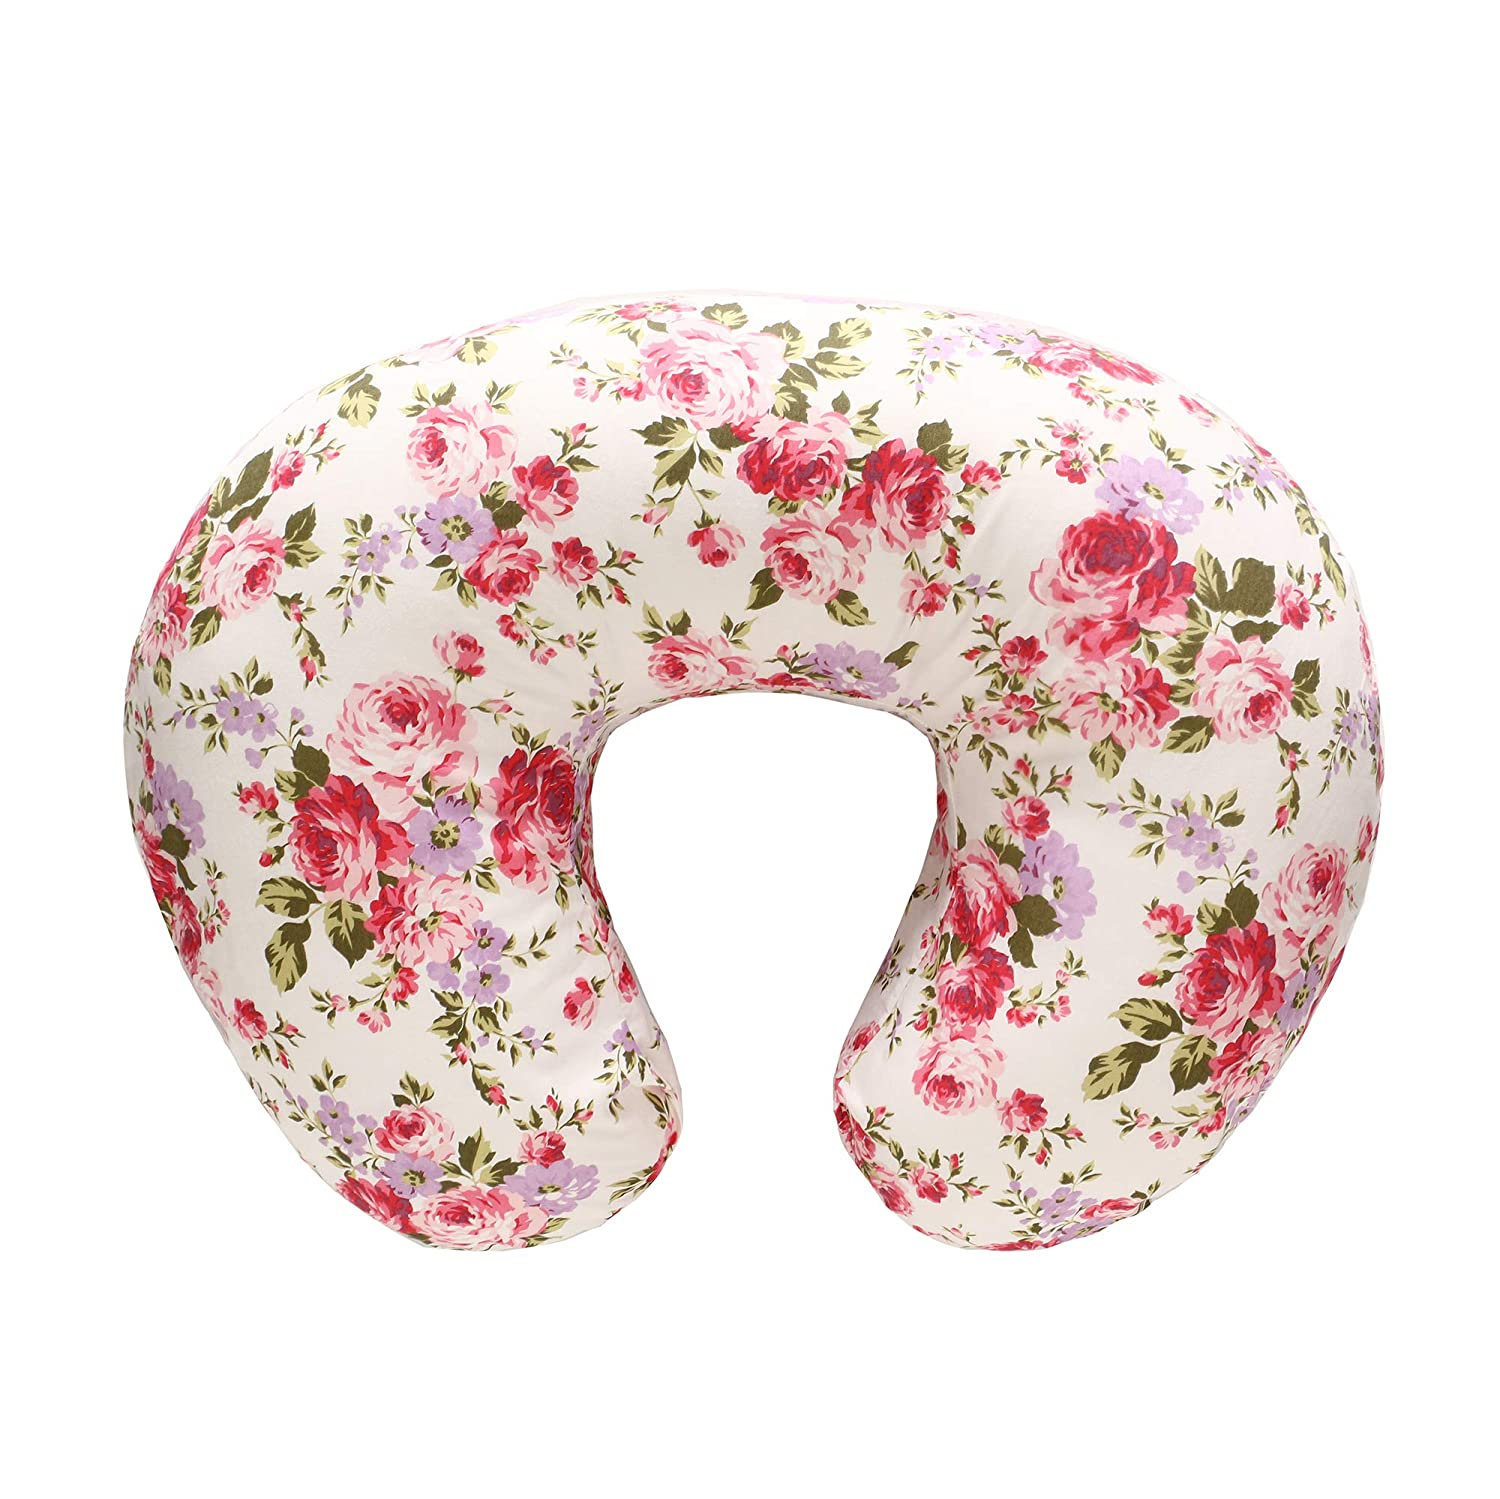 LAT Nursing Pillow Cover,100% Natural Cotton Breastfeeding Pillow Slipcover,Extra Soft and Snug on Baby Nursing Pillow(Flower)